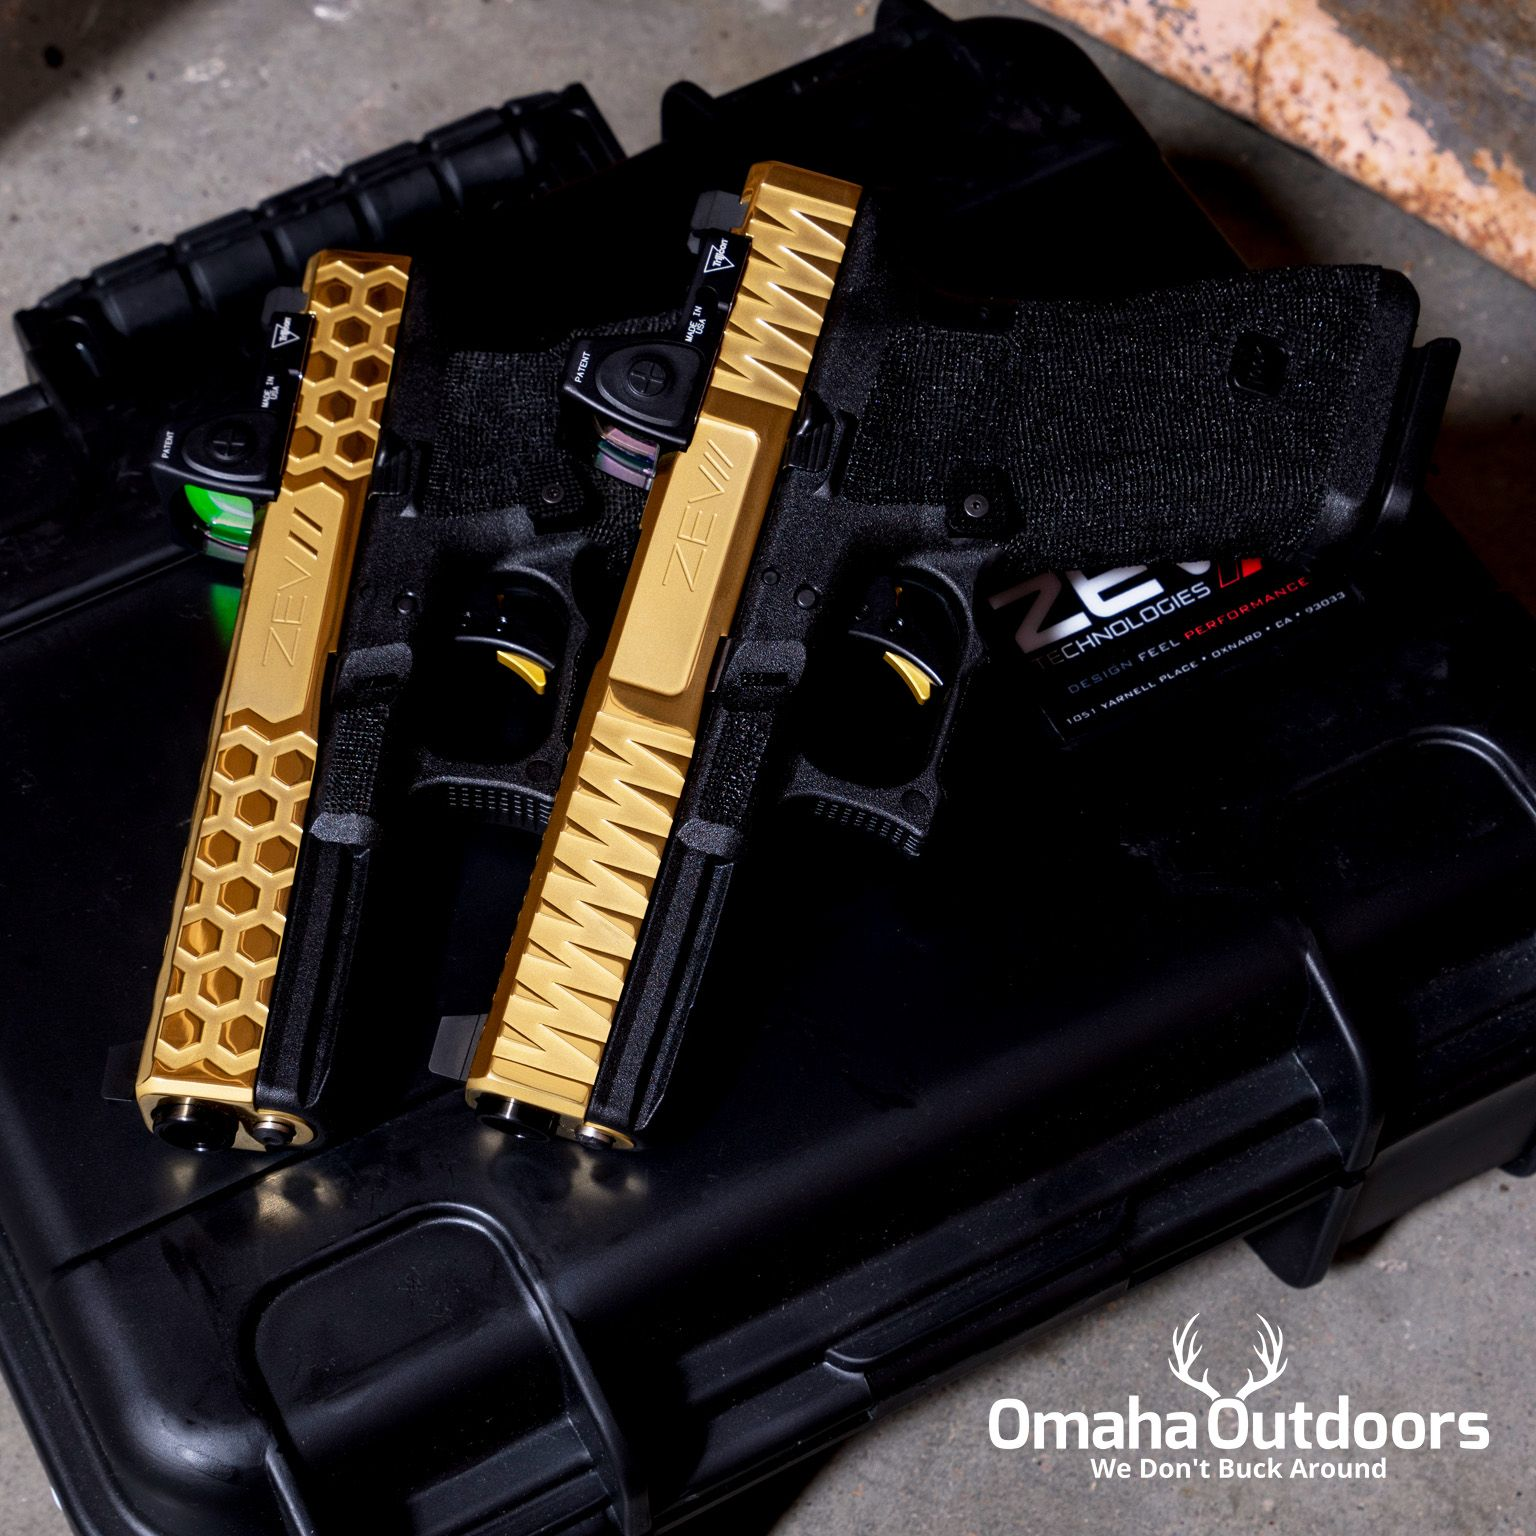 ZEV Technologies Glock 17 Gen 3 with TiN polished slides and